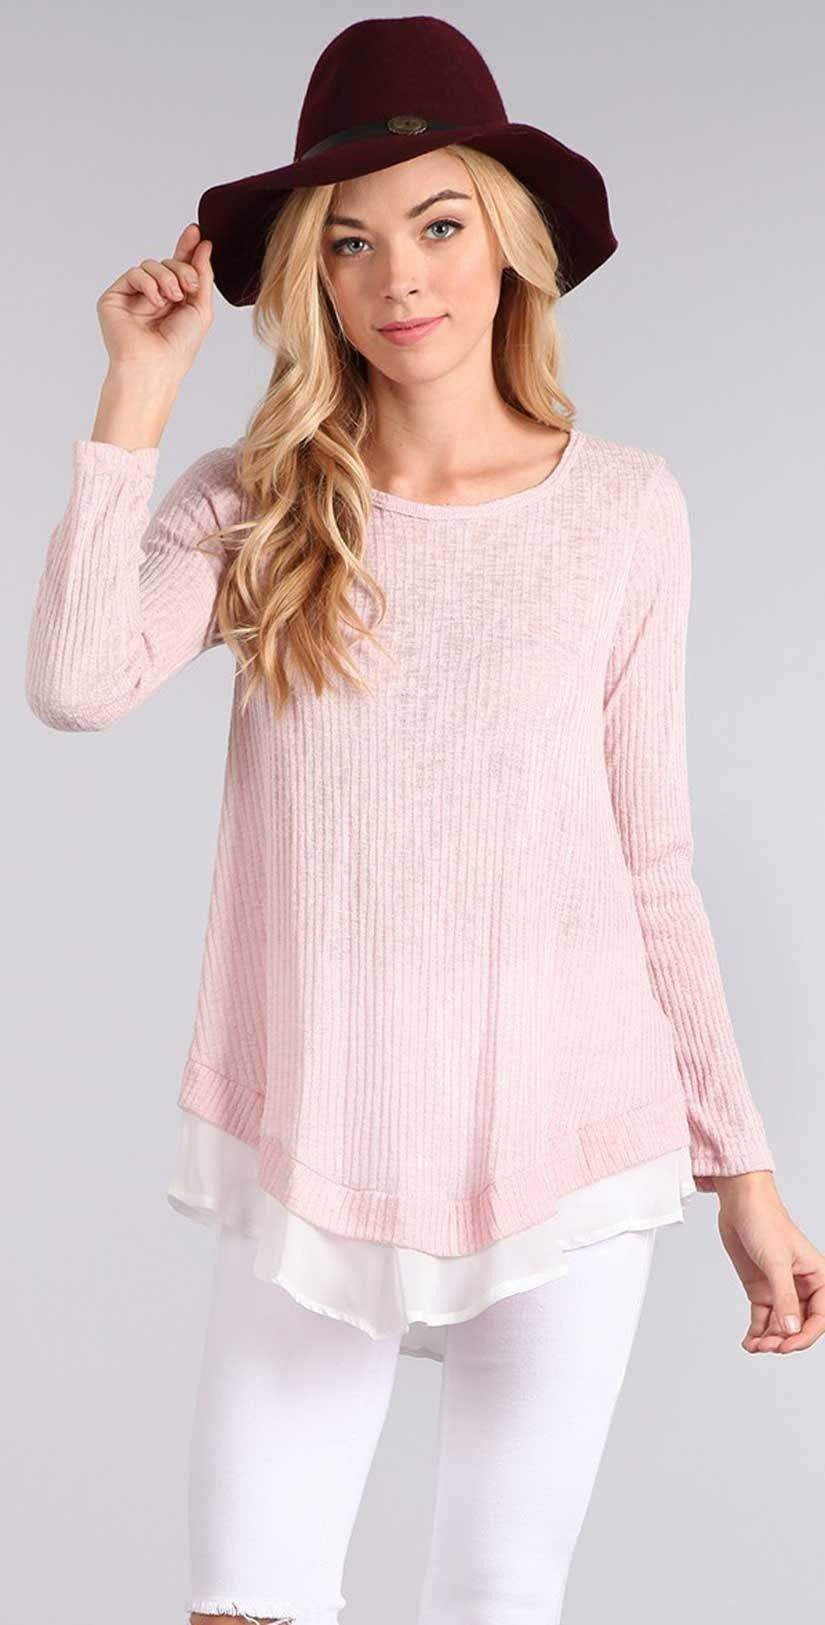 Chris and Carol Knit Sweater with Chiffon Detail in Pink | 2018 | Long Sleeve shirt |